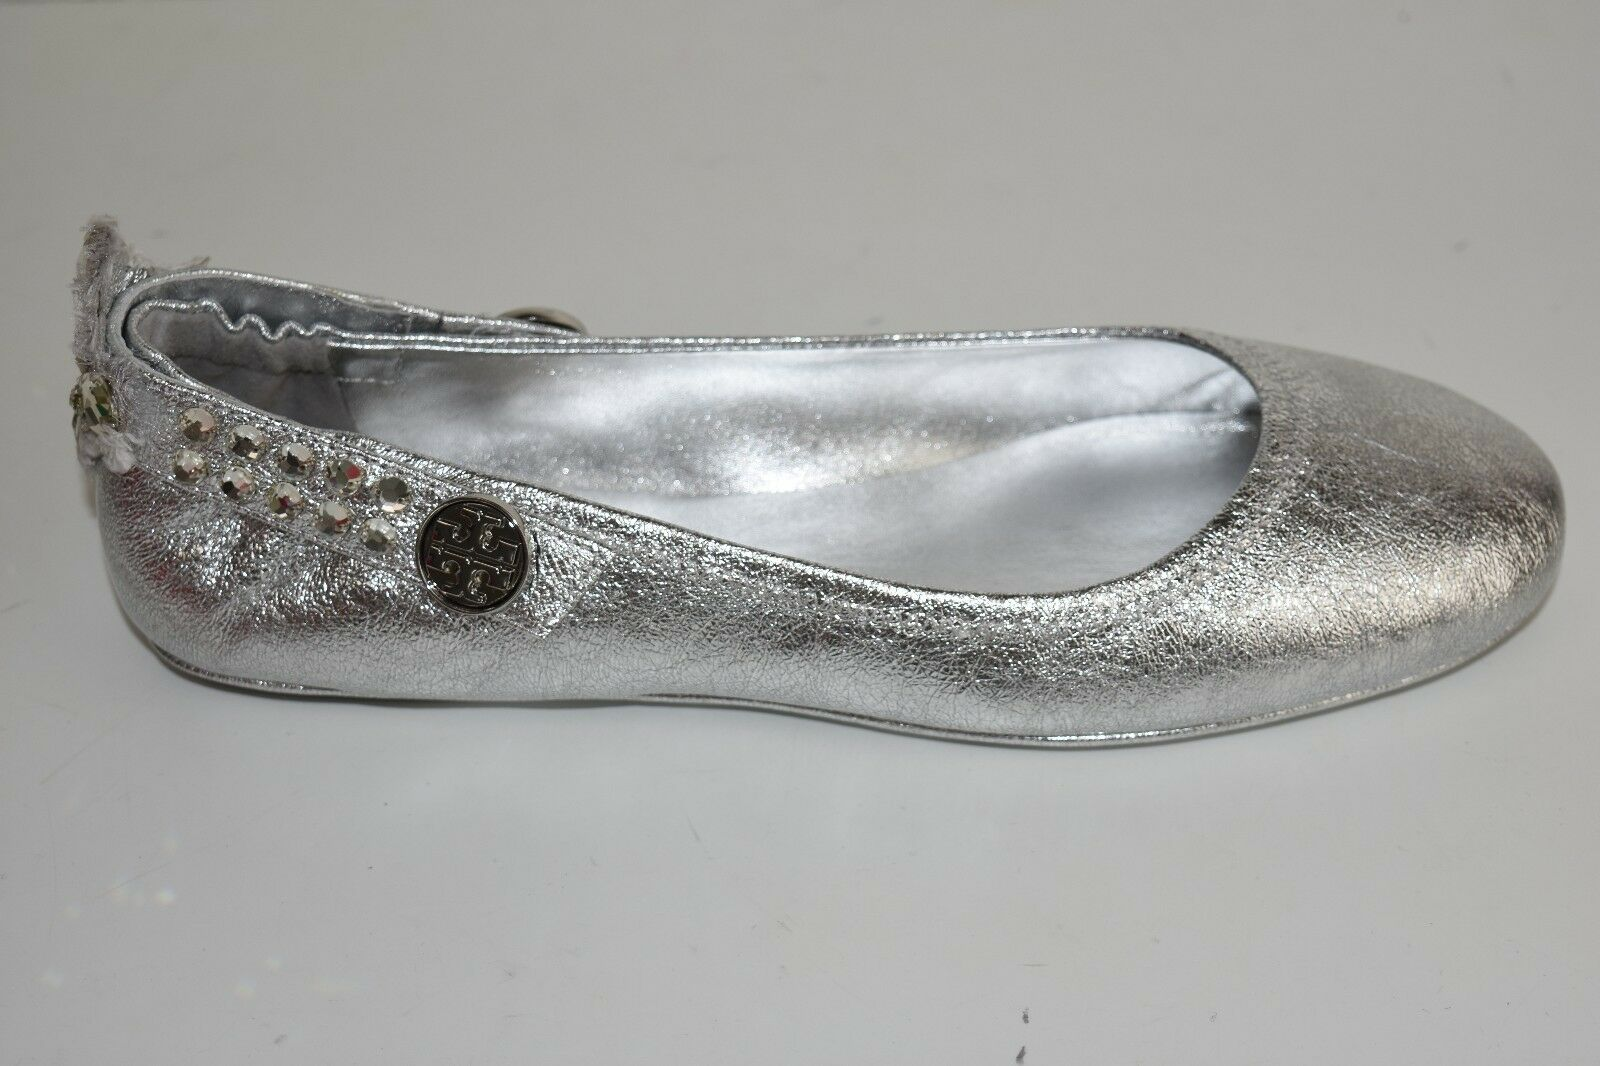 NEW Tory Burch MINNIE Crystals Crystals Crystals EMBELLISHED TWO WAY FLATS Silver Clear shoes 10 f1dc4c